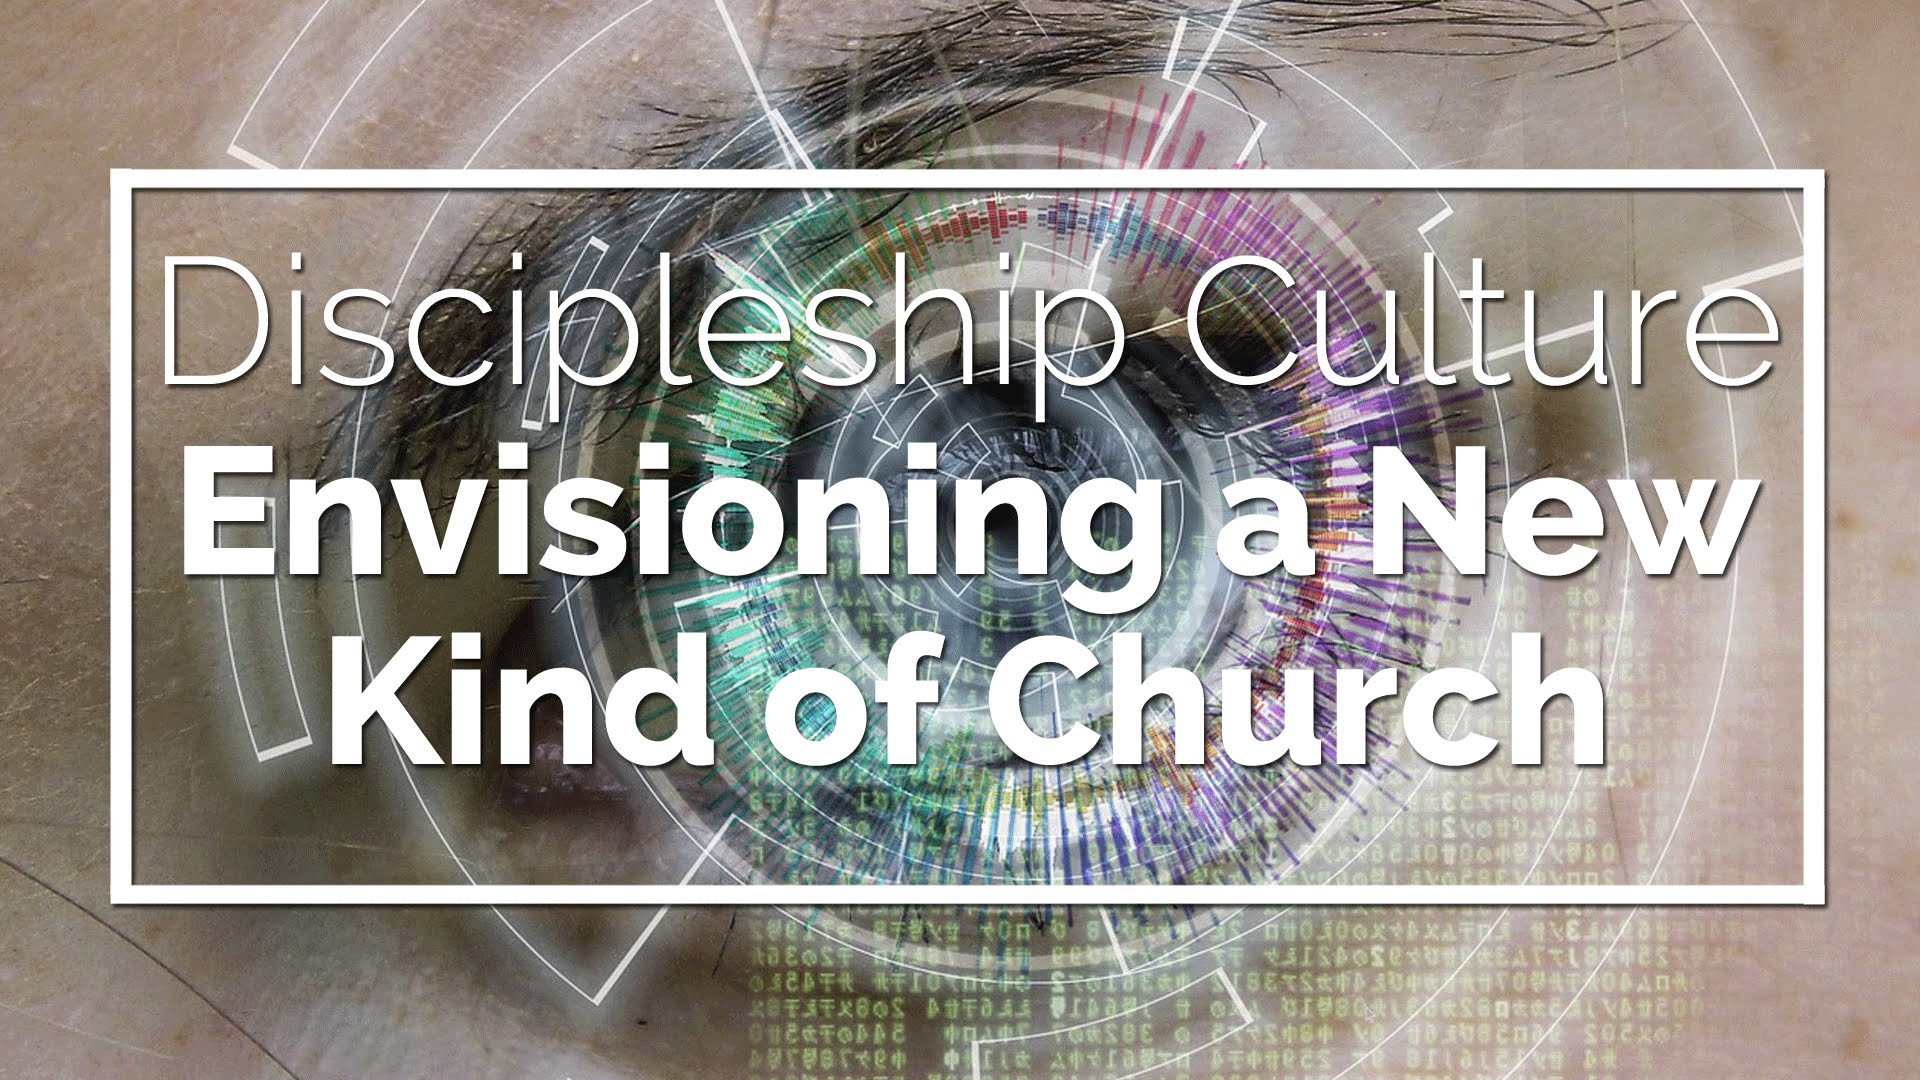 Discipleship Culture: Envisioning a New Kind of Church